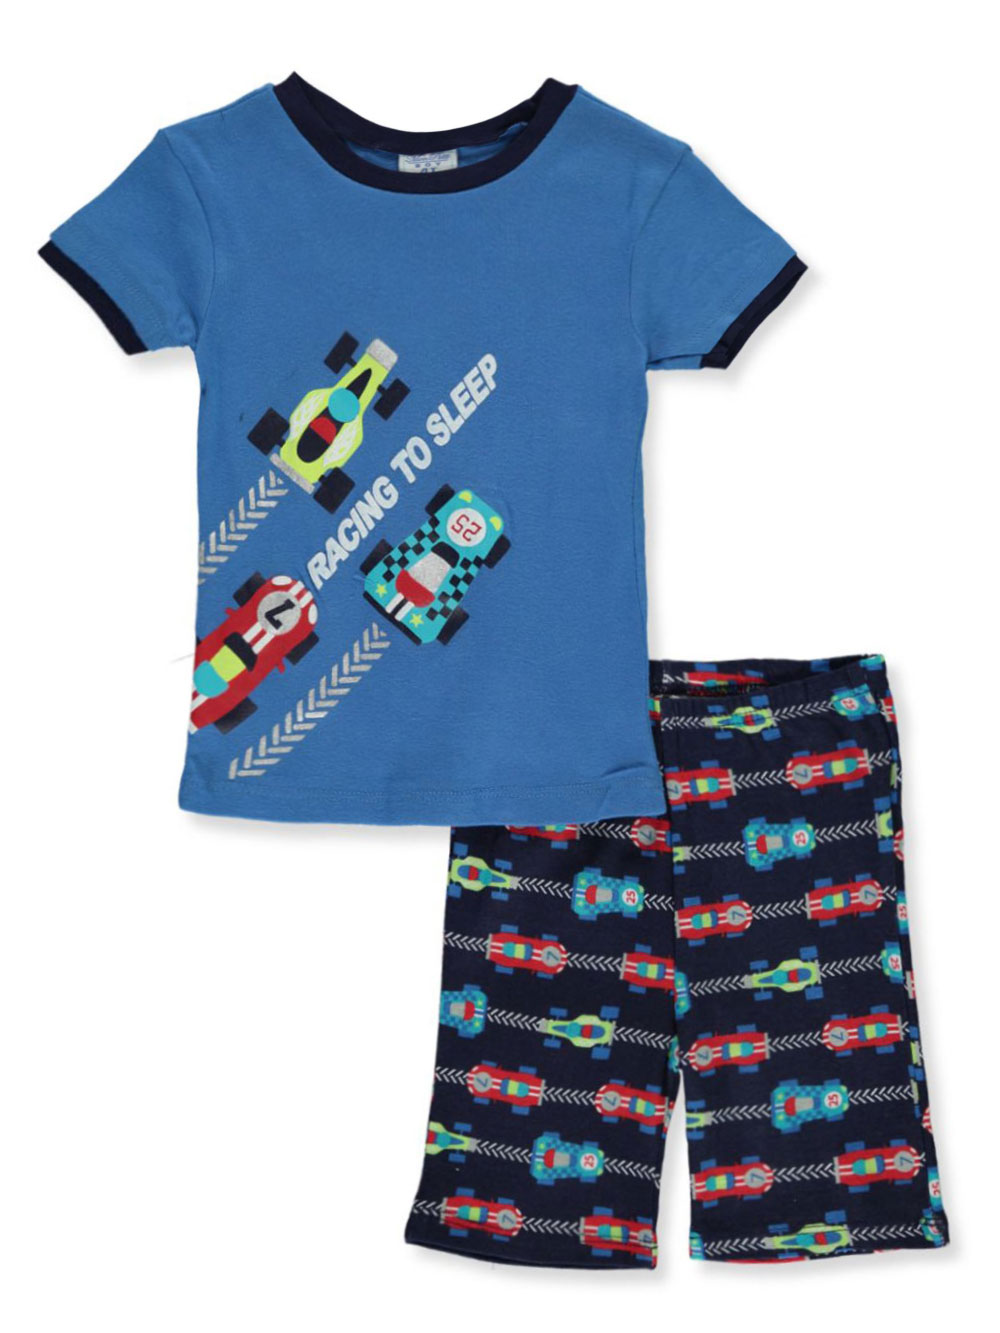 Blue and Multicolor Sleepwear